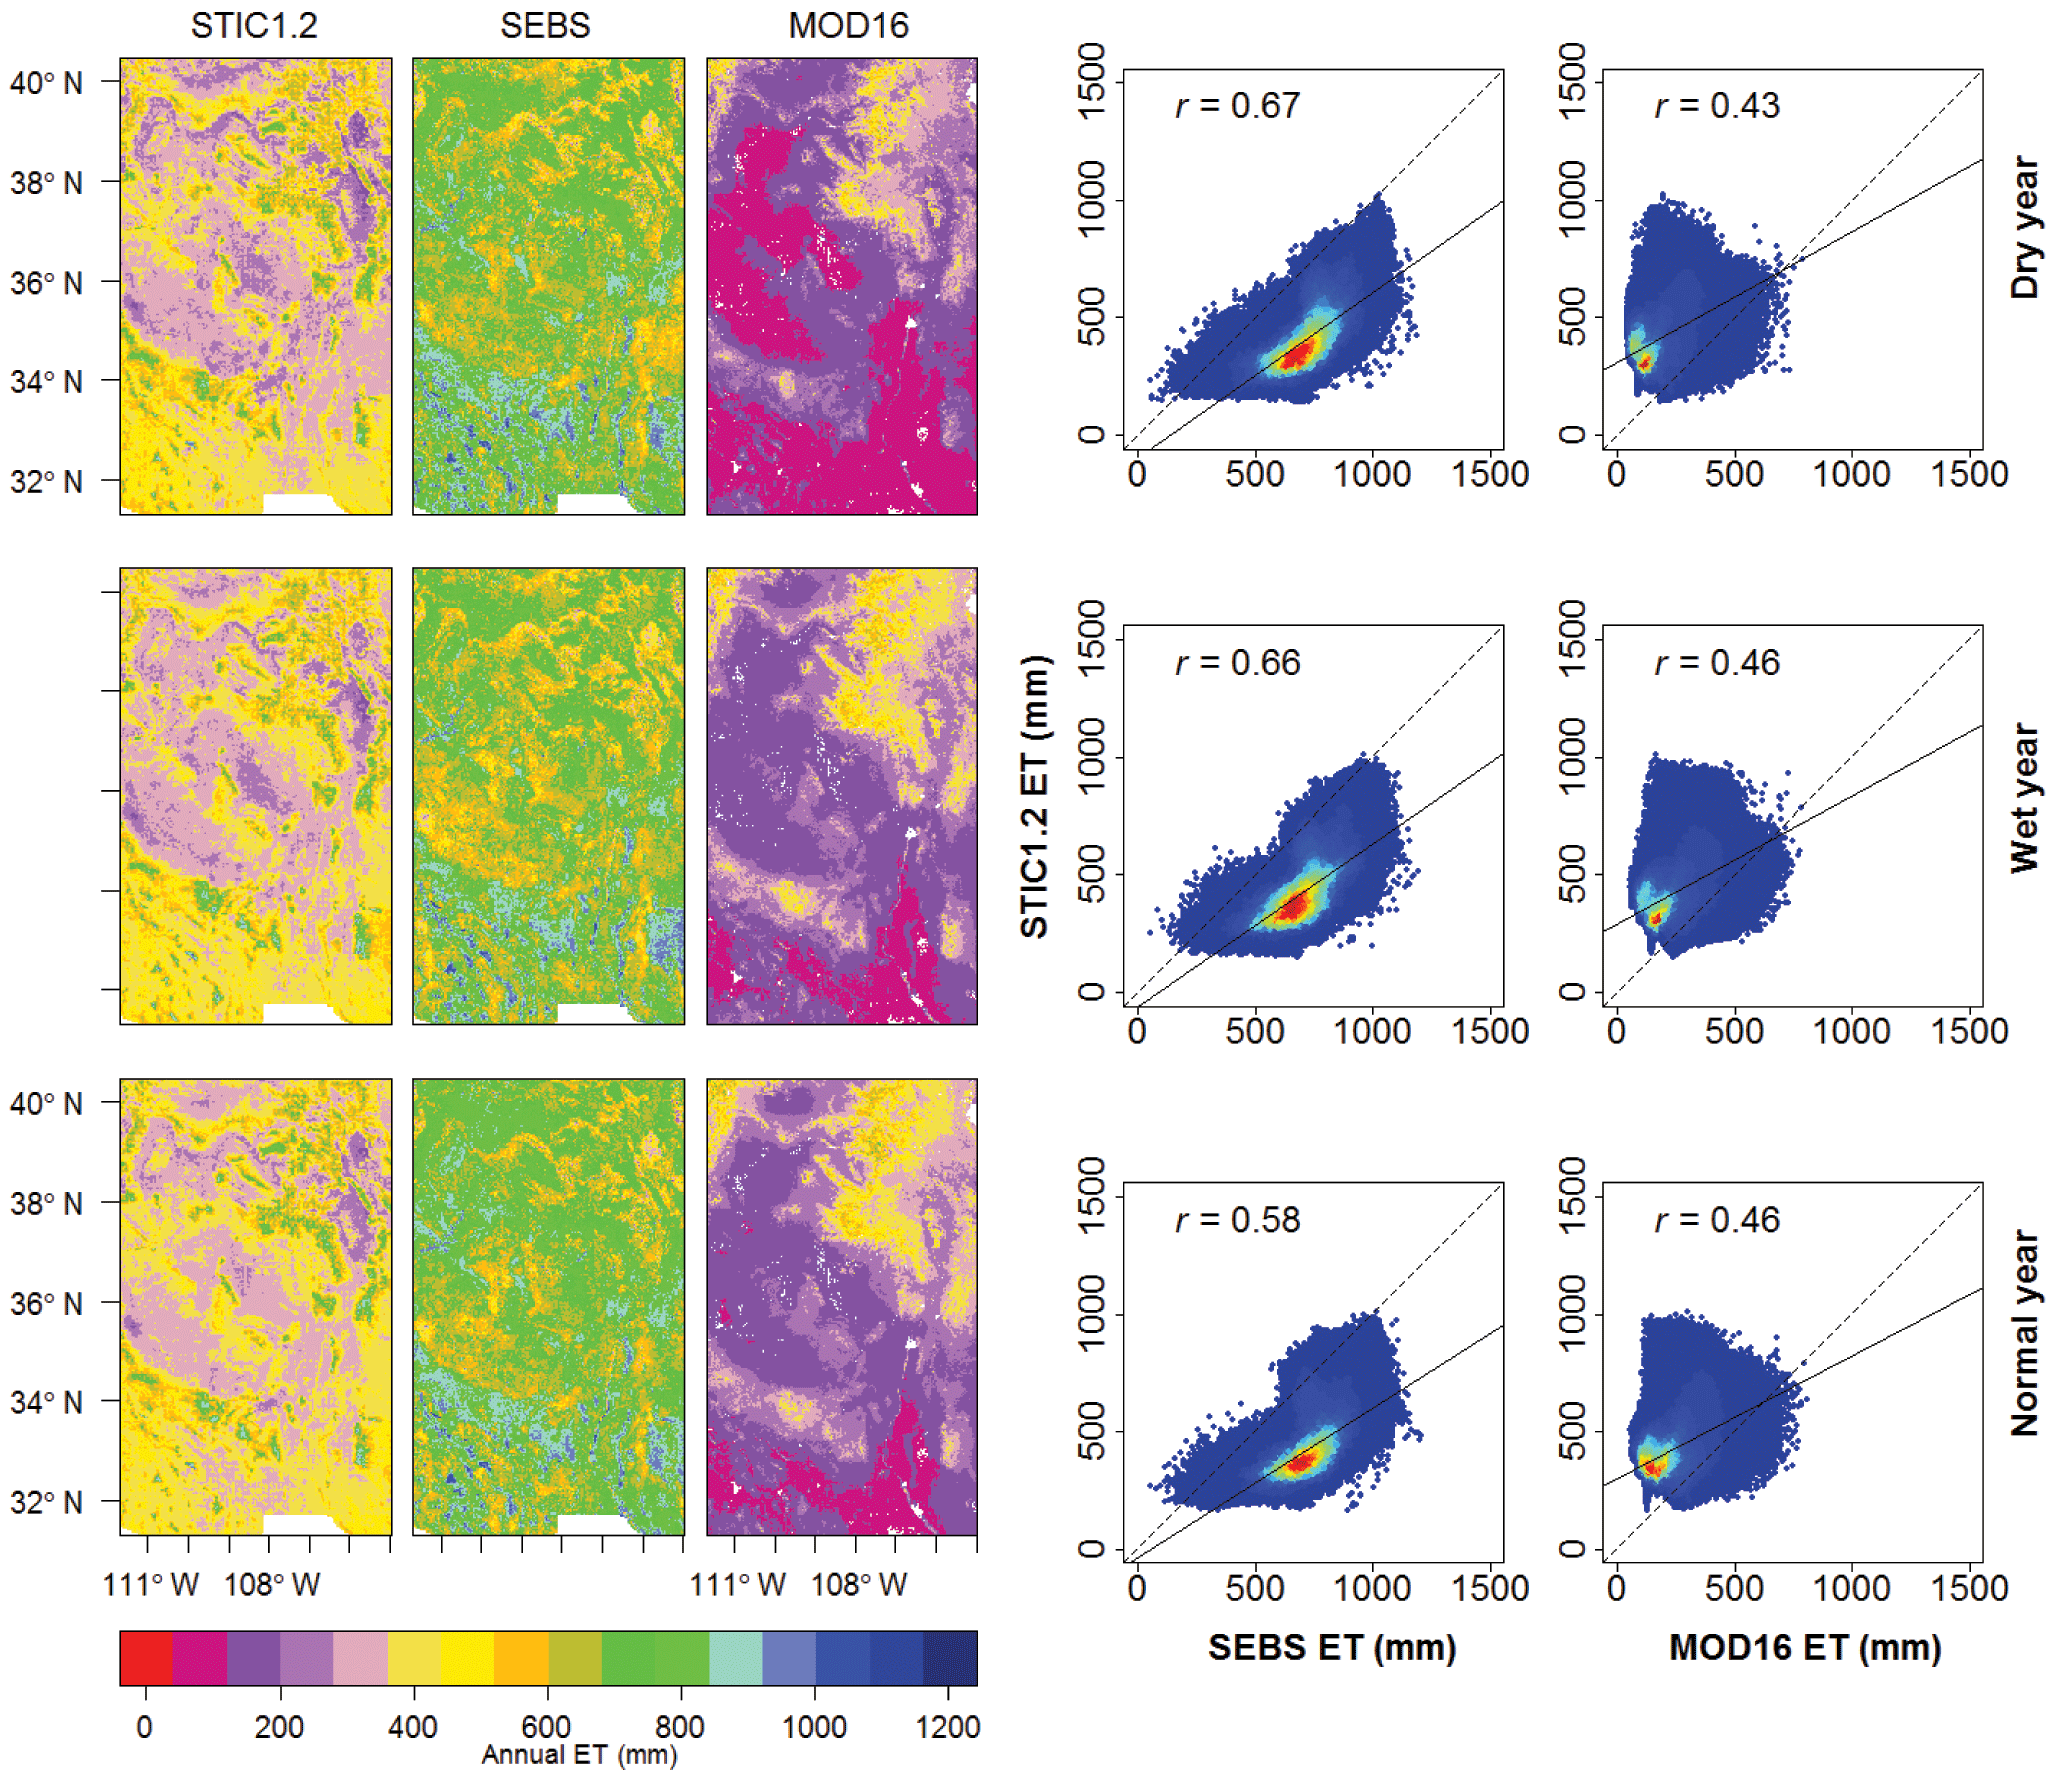 HESS - Regional evapotranspiration from an image-based